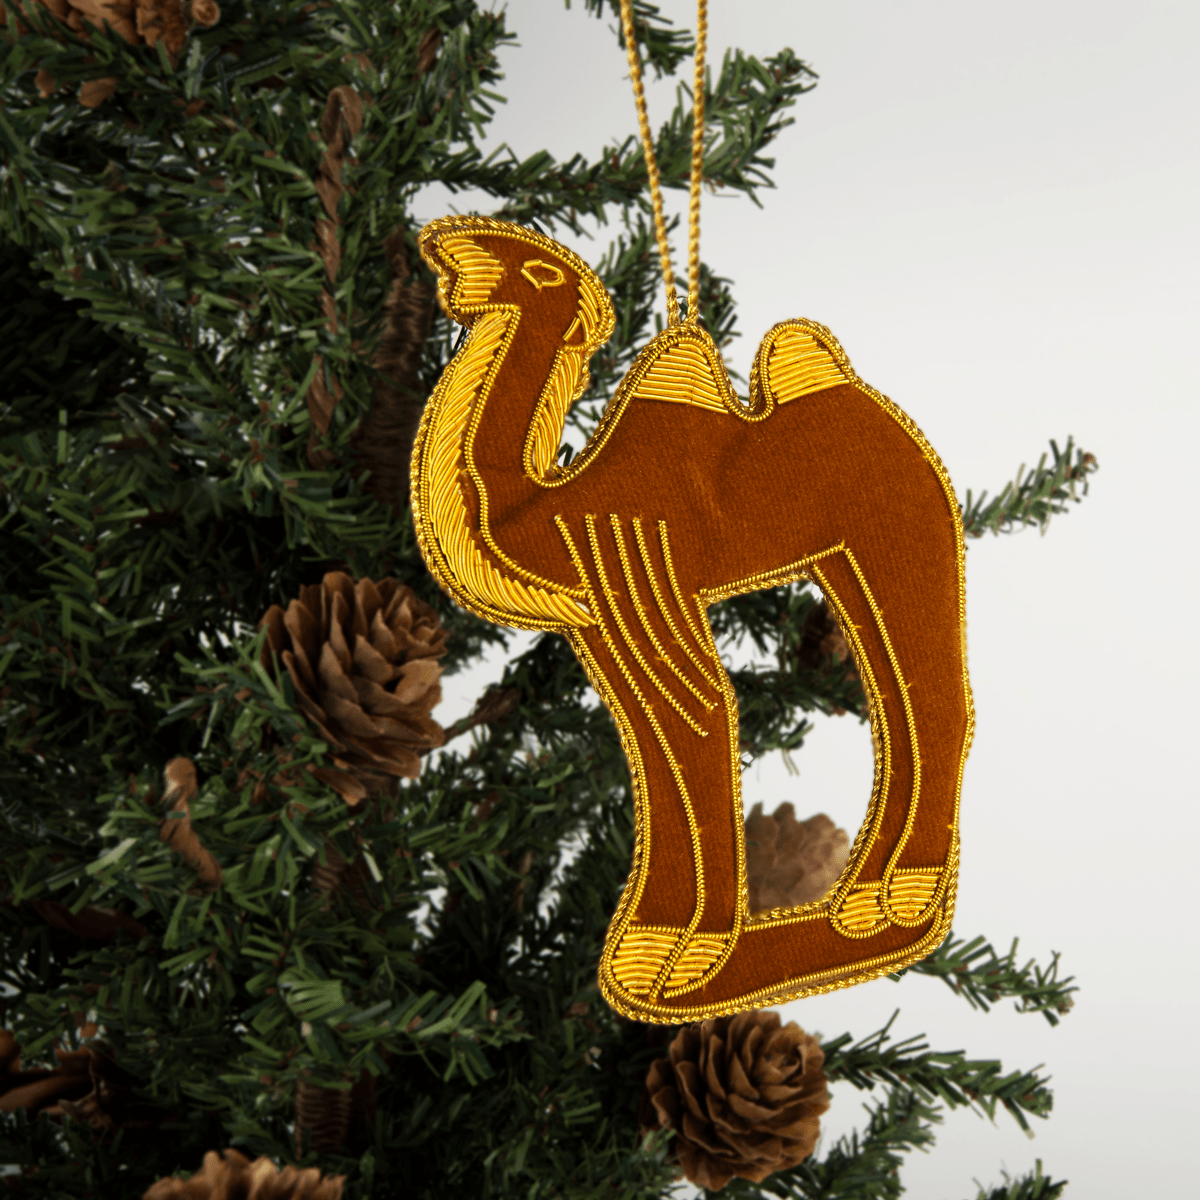 Mount Vernon Christmas Camel Ornament